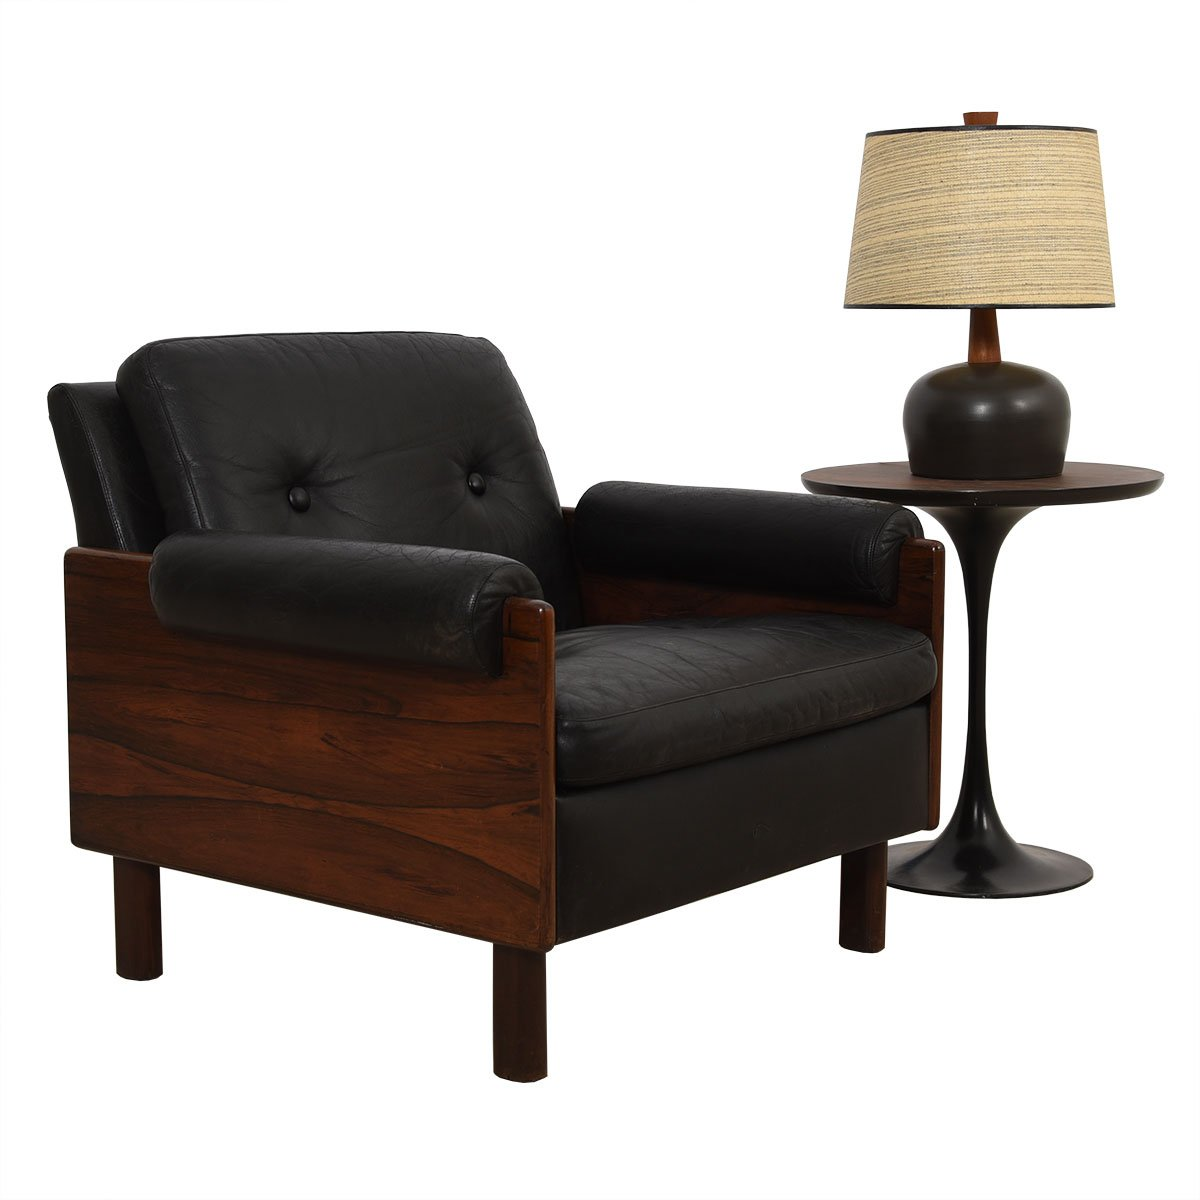 Danish Modern Rosewood & Black Leather Lounge Chair